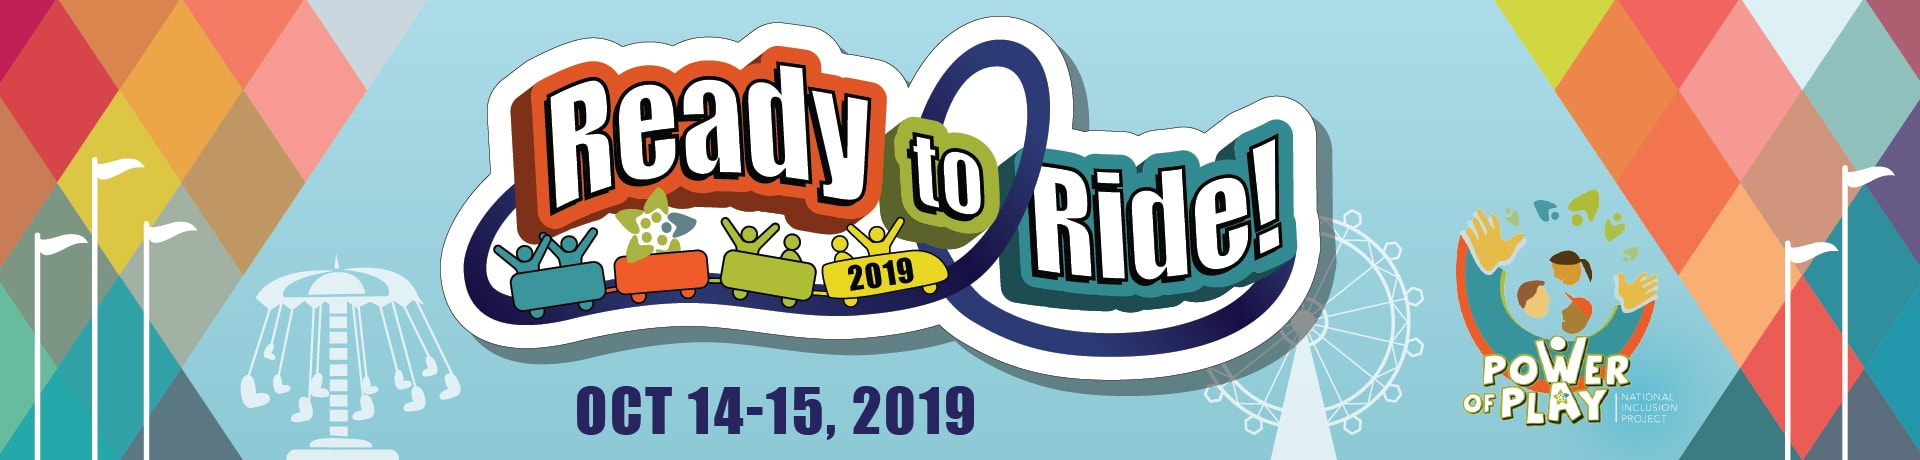 ready_to_ride_1920x460_website